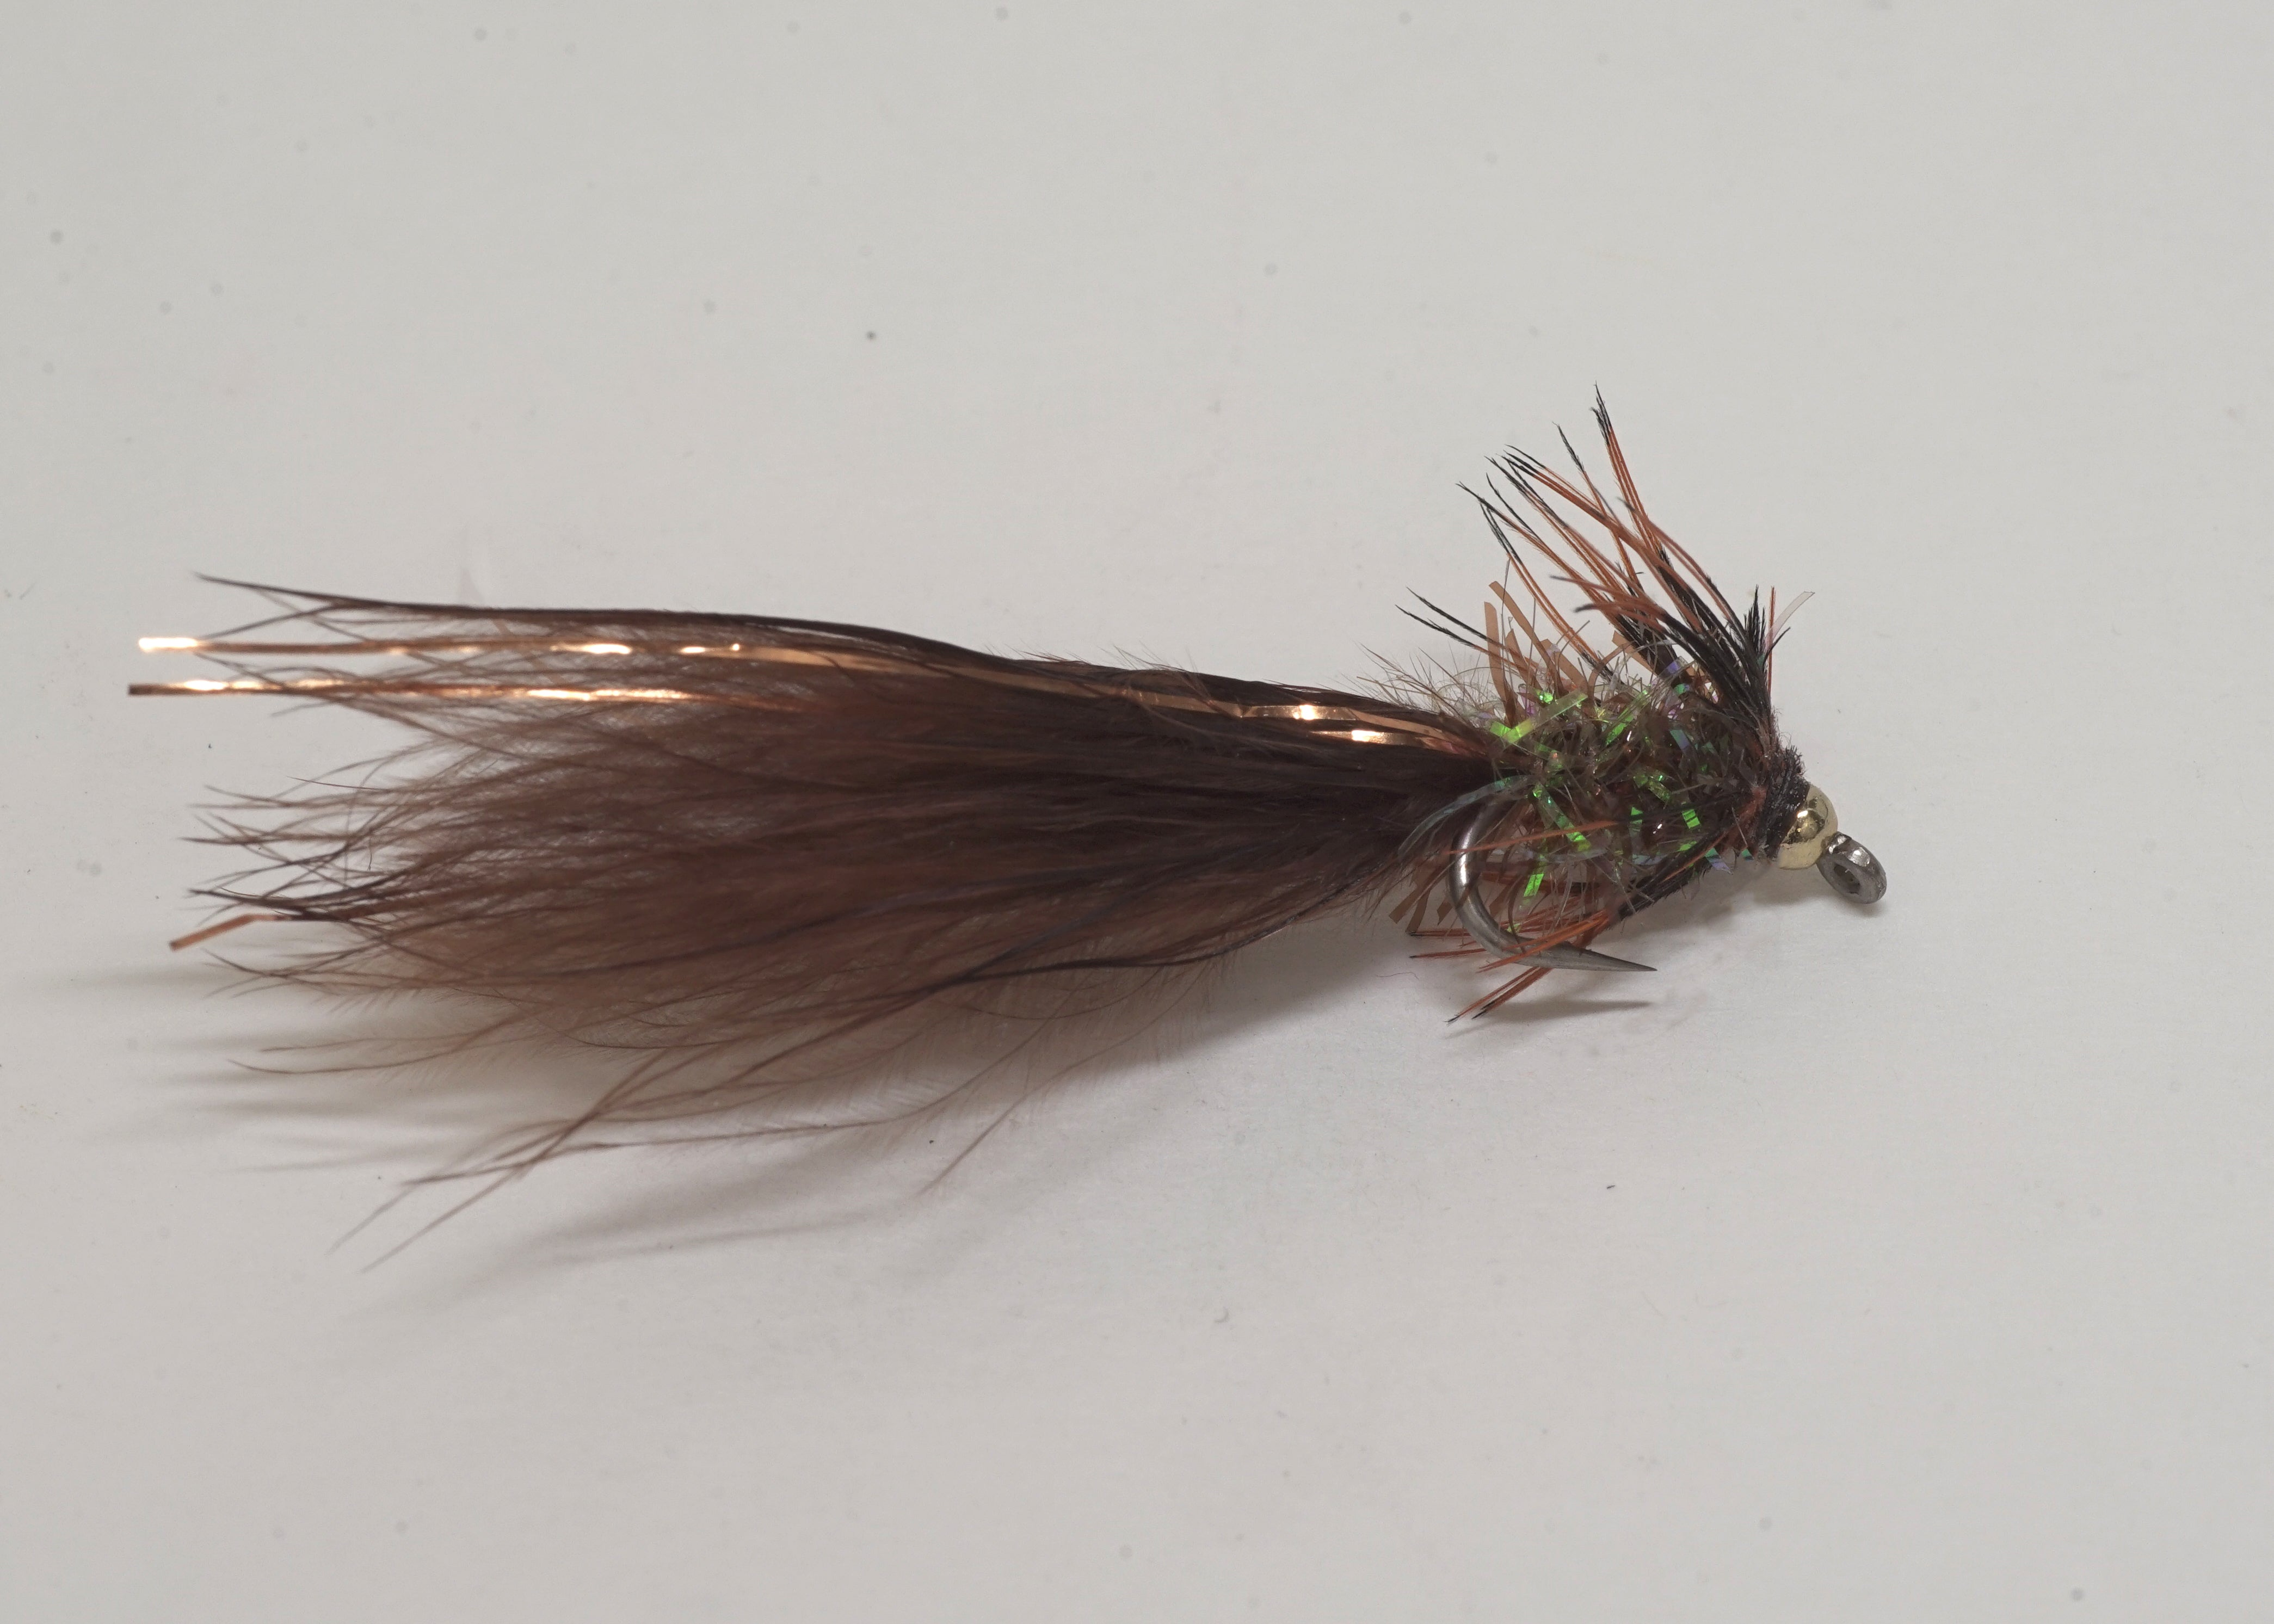 Phil Rowley's Pitching Leech-Brown